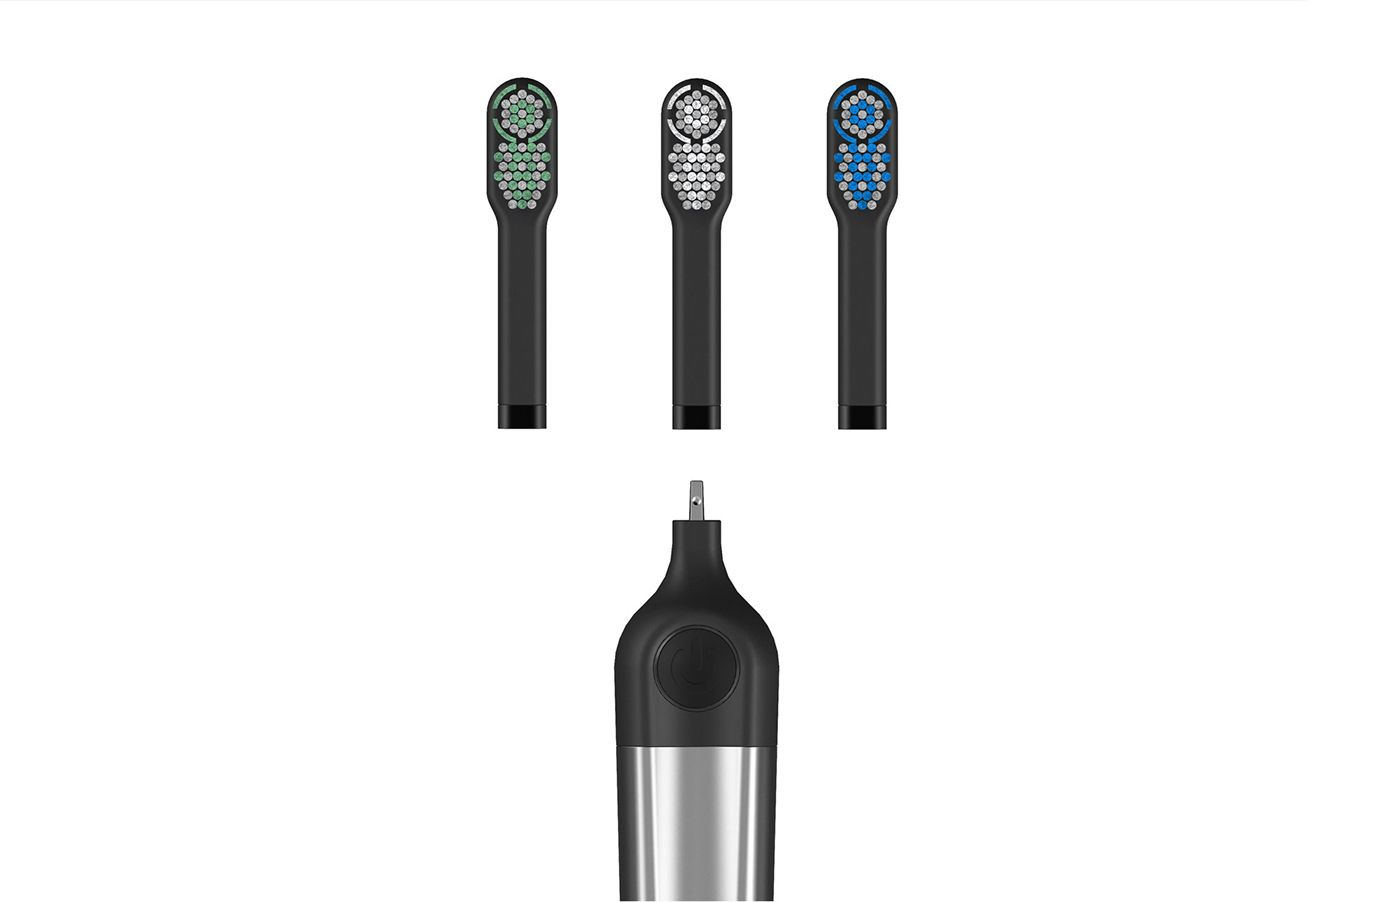 Electric Toothbrush Concept Brushing teeth, Electric